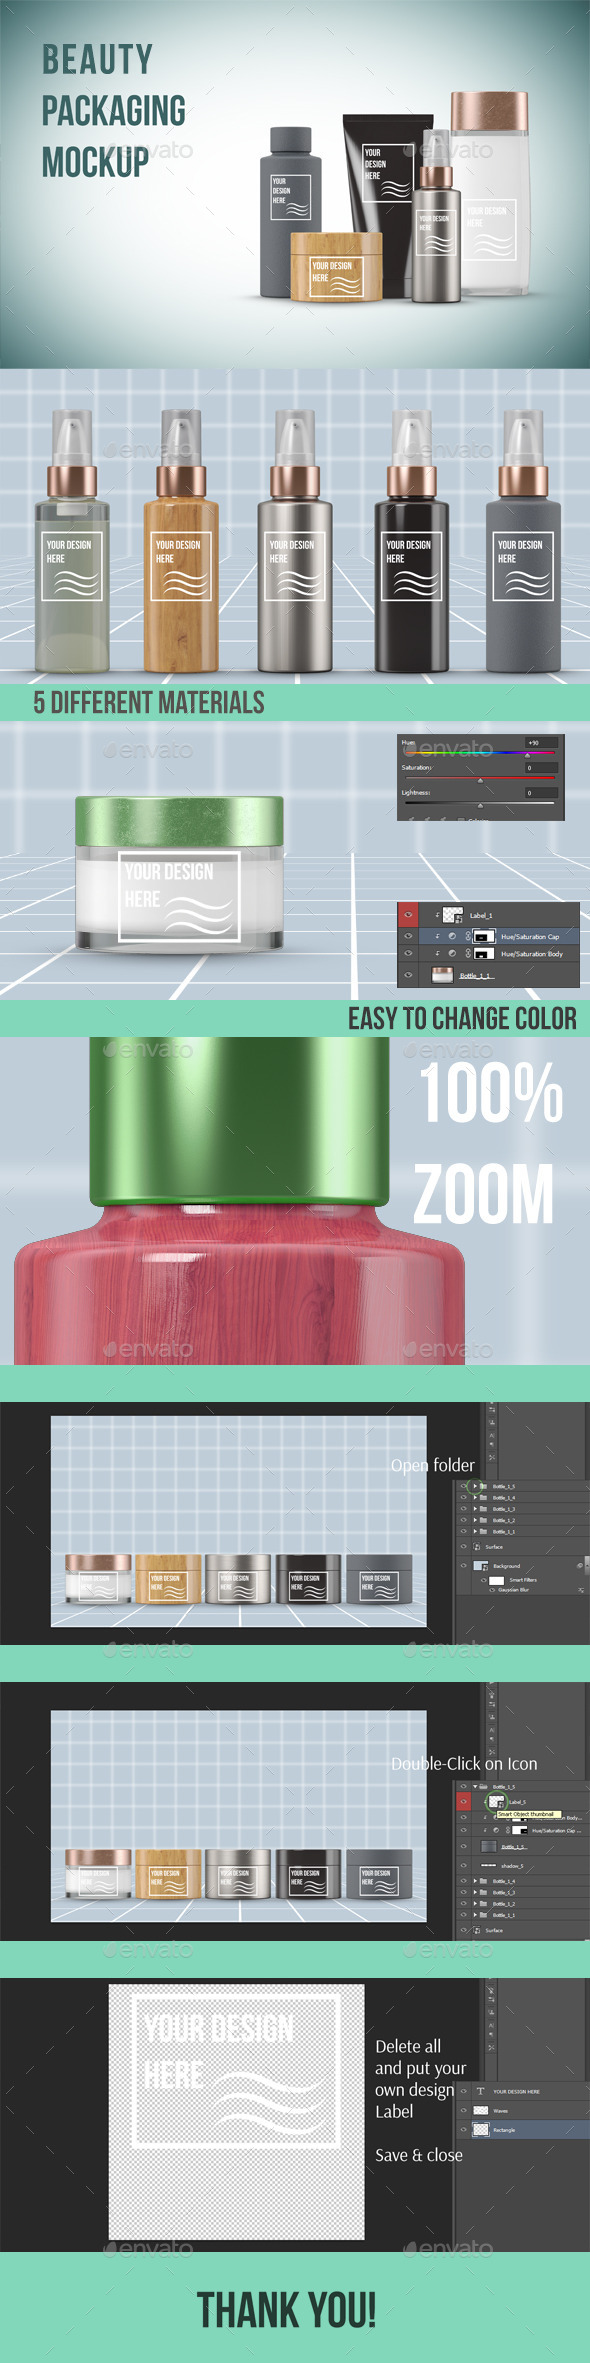 Beauty Products Packaging Mockup - Beauty Packaging